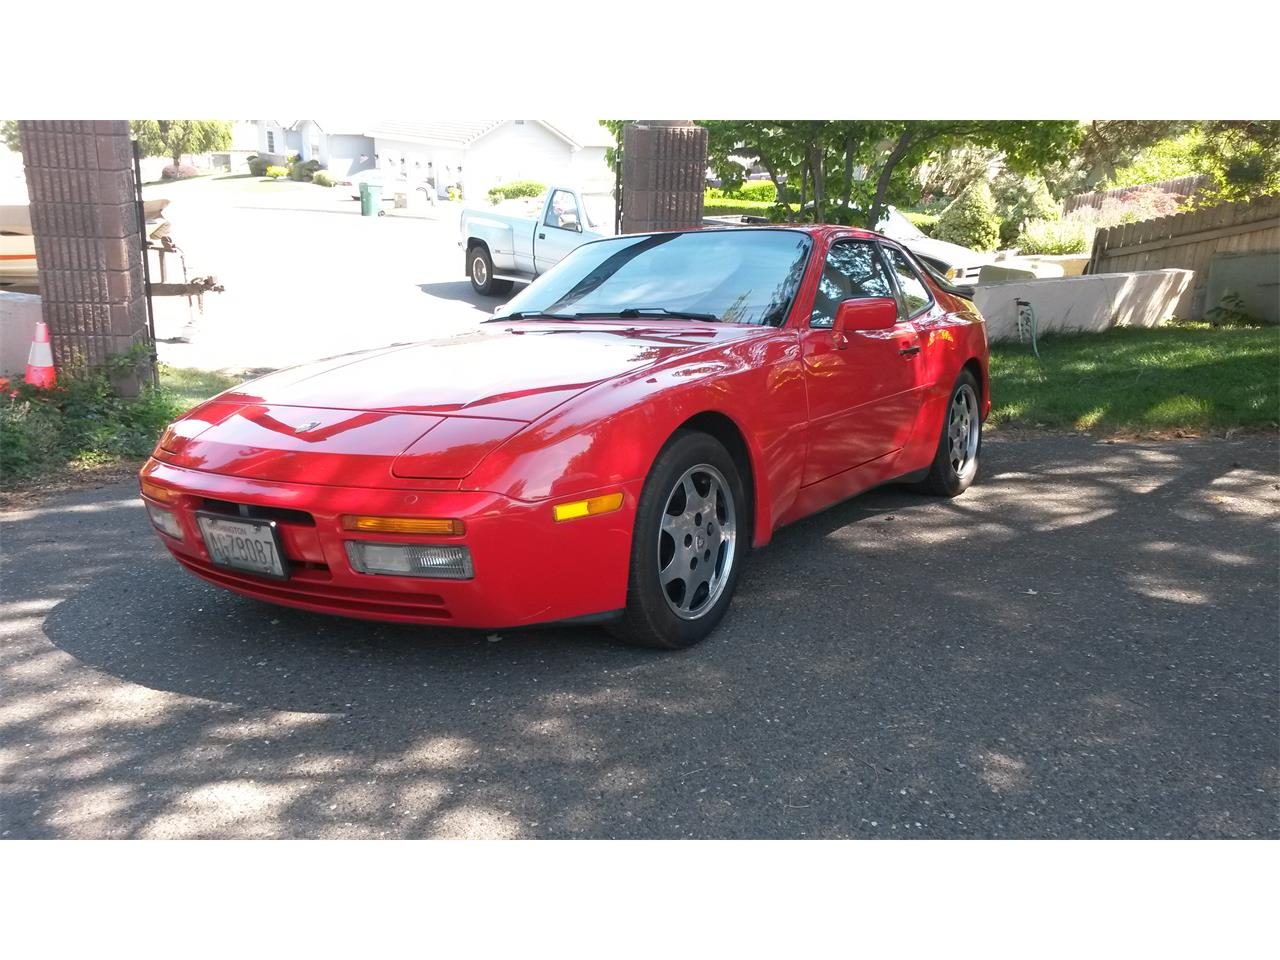 Large Picture of '89 Porsche 944S2 located in Washington - $25,000.00 - L7PM